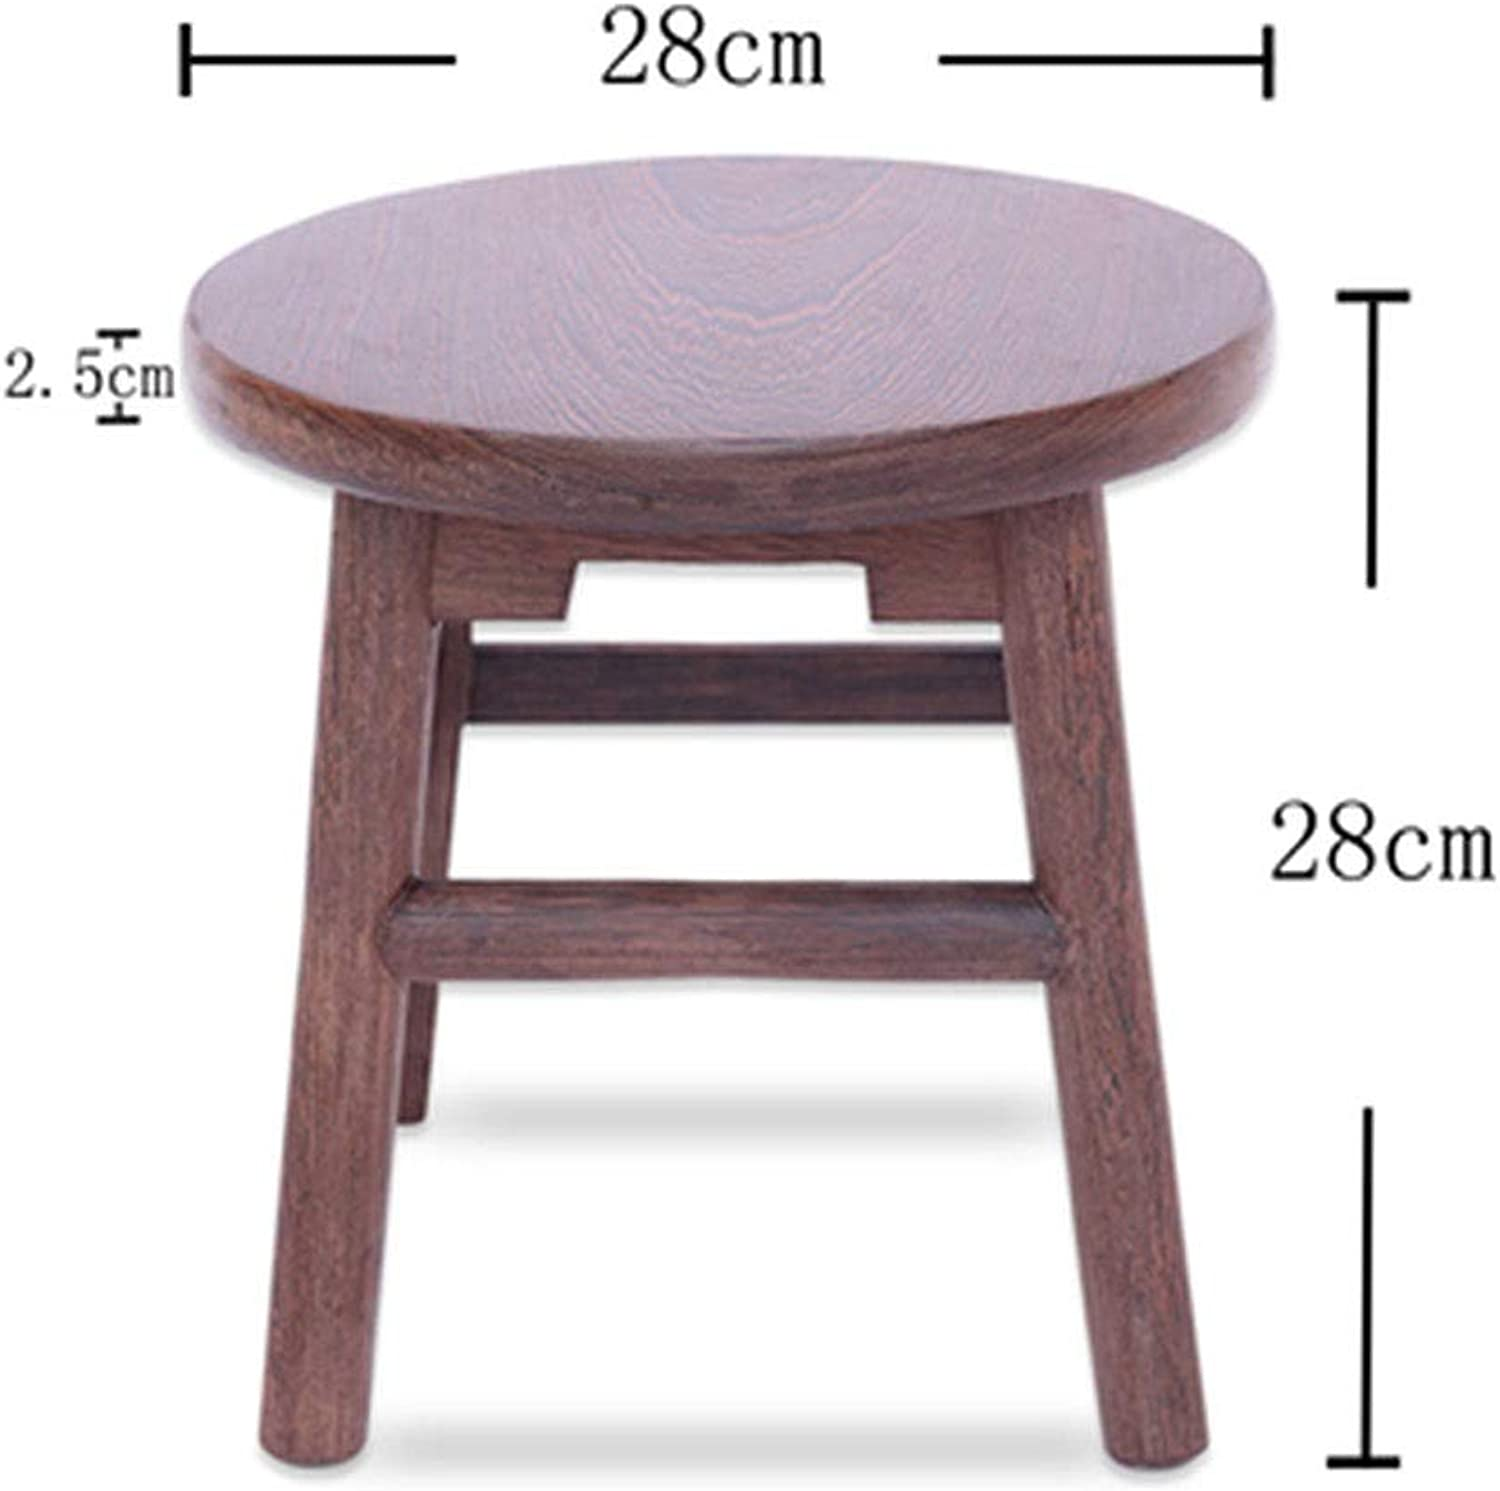 B.YDCM Wooden Bench- Stool Small Square Stool Restaurant Home Wooden Stool Dining Stool Low Stool Solid Wood Bench Bench - Wood Bench (color   K)